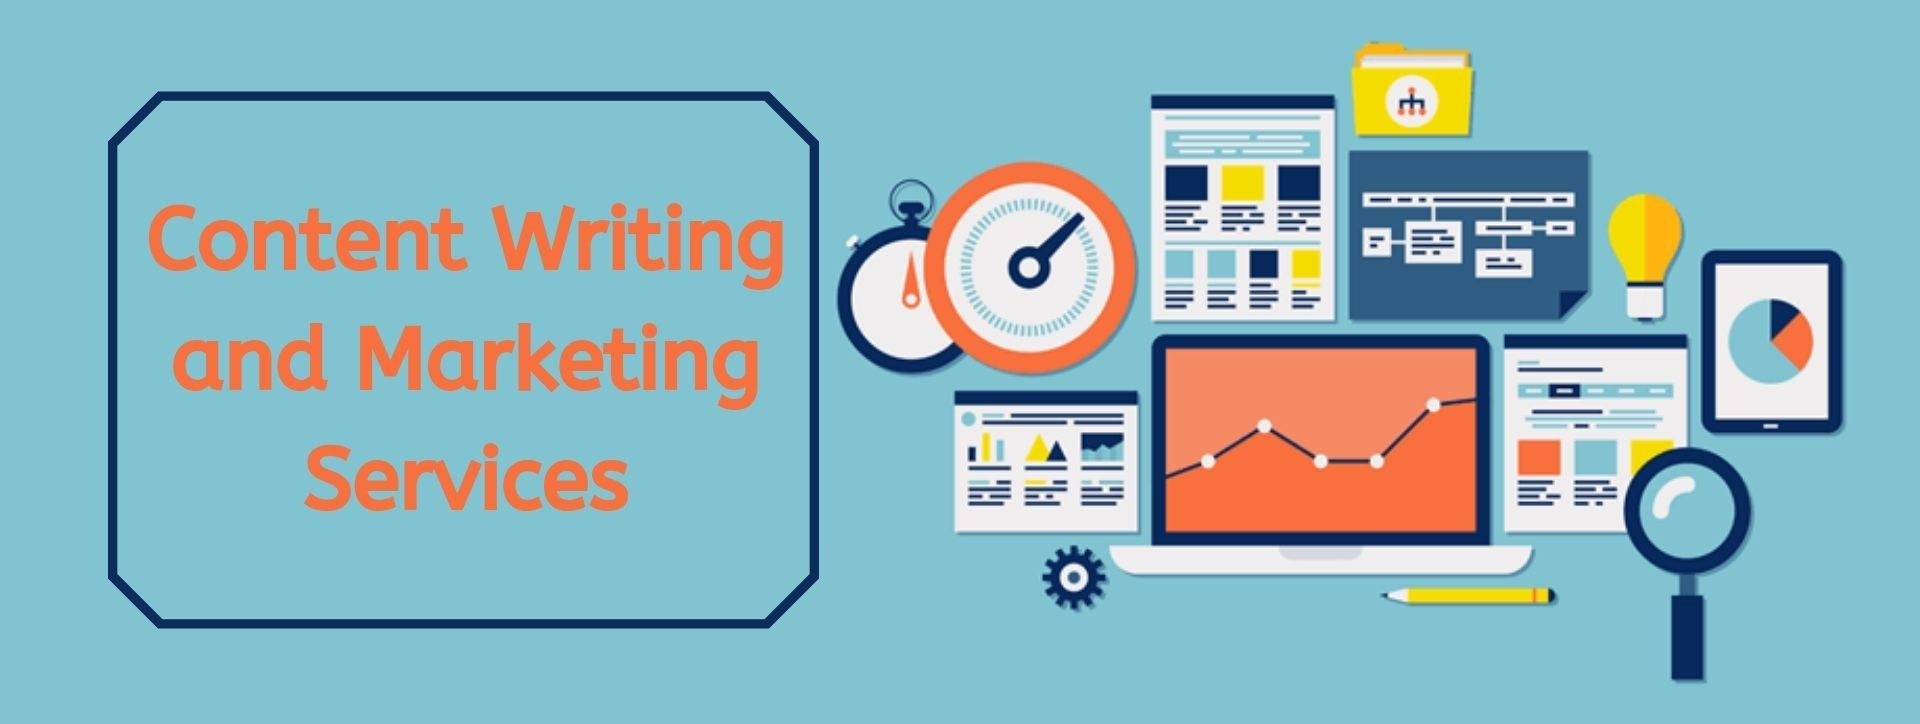 Content Writing and Marketing Services - Emarketz